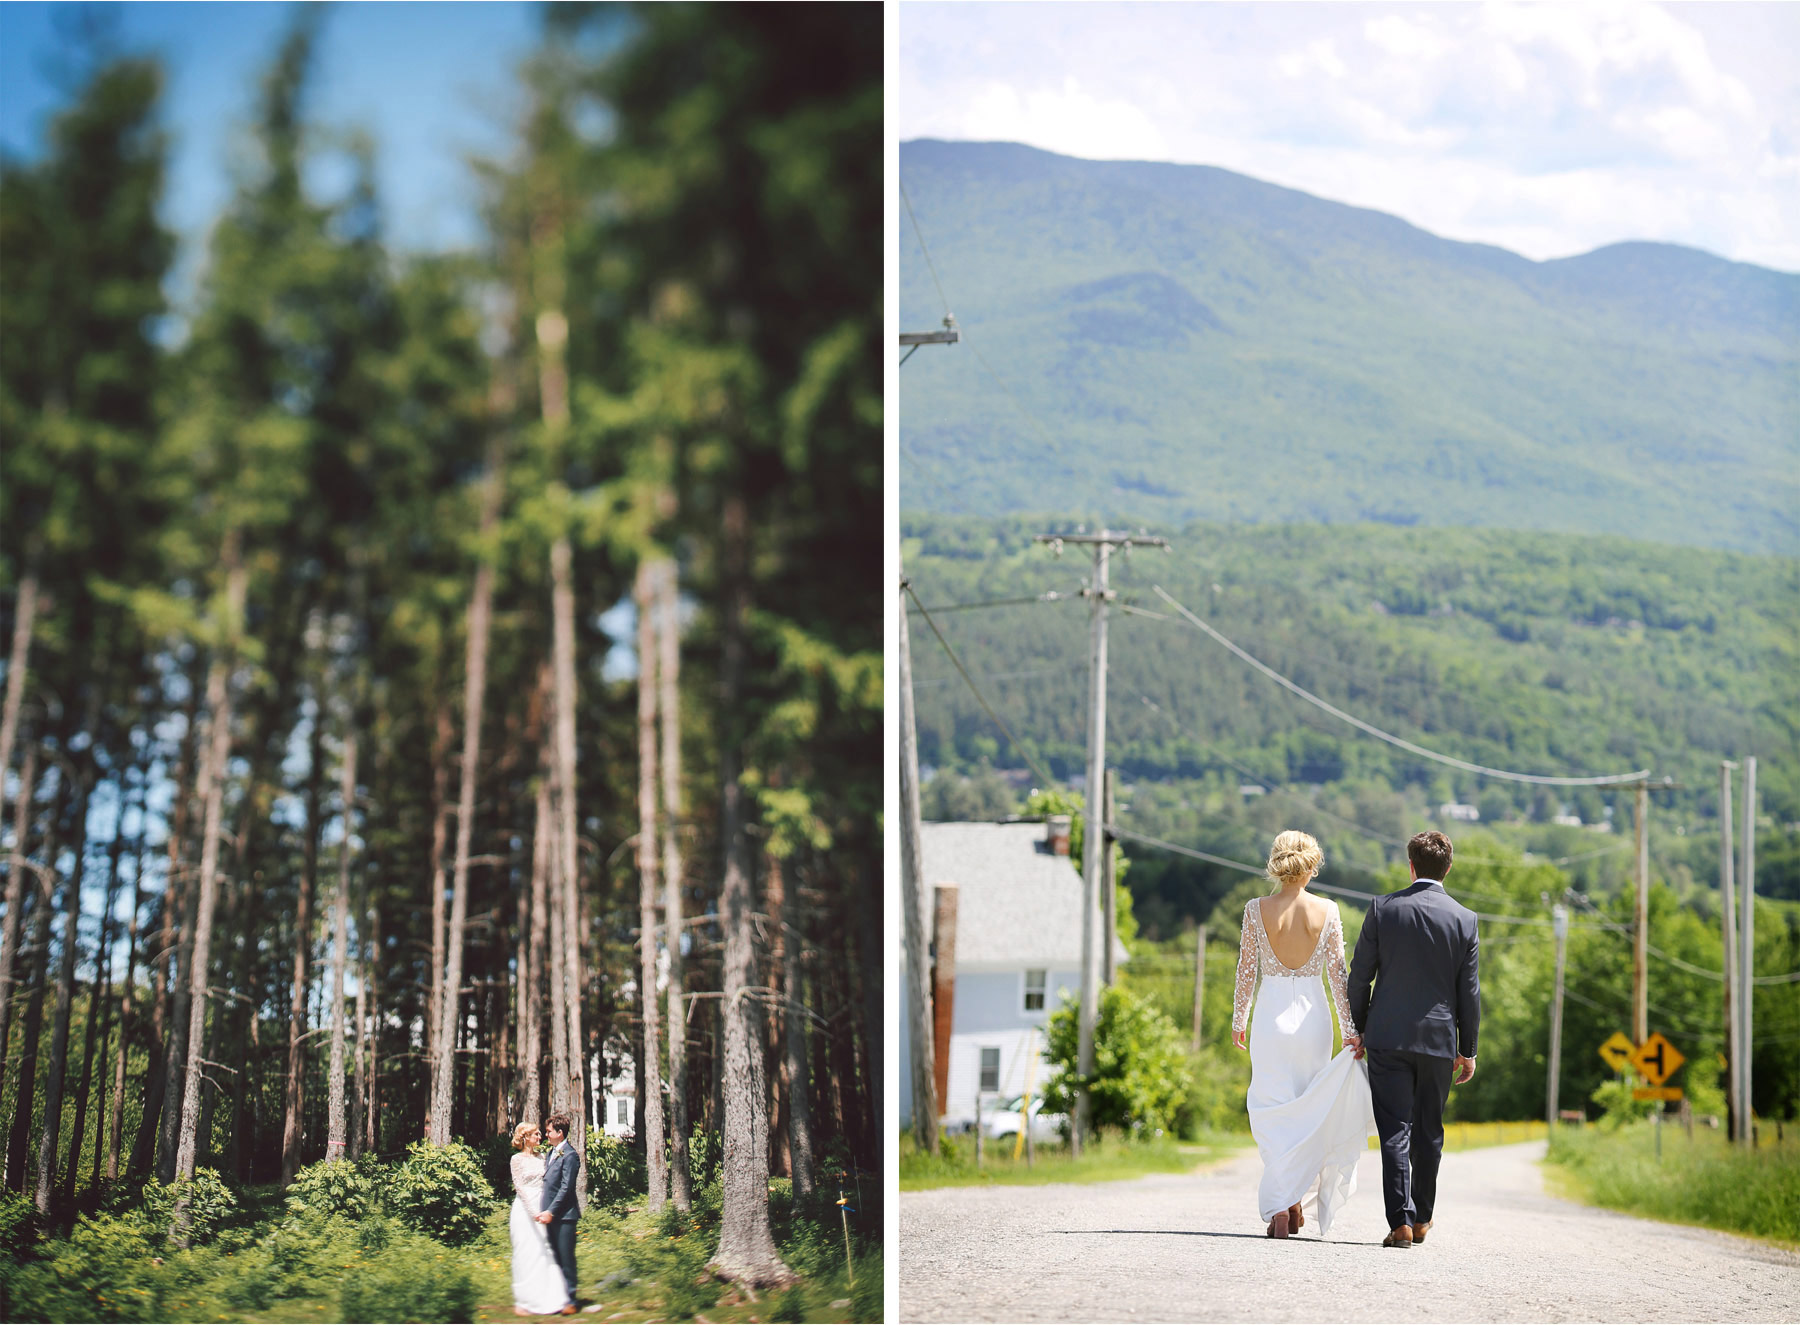 15-Stowe-Vermont-Wedding-Photography-by-Vick-Photography-Edson-Hill-Forest-Woods-Mackenzie-and-Jim.jpg